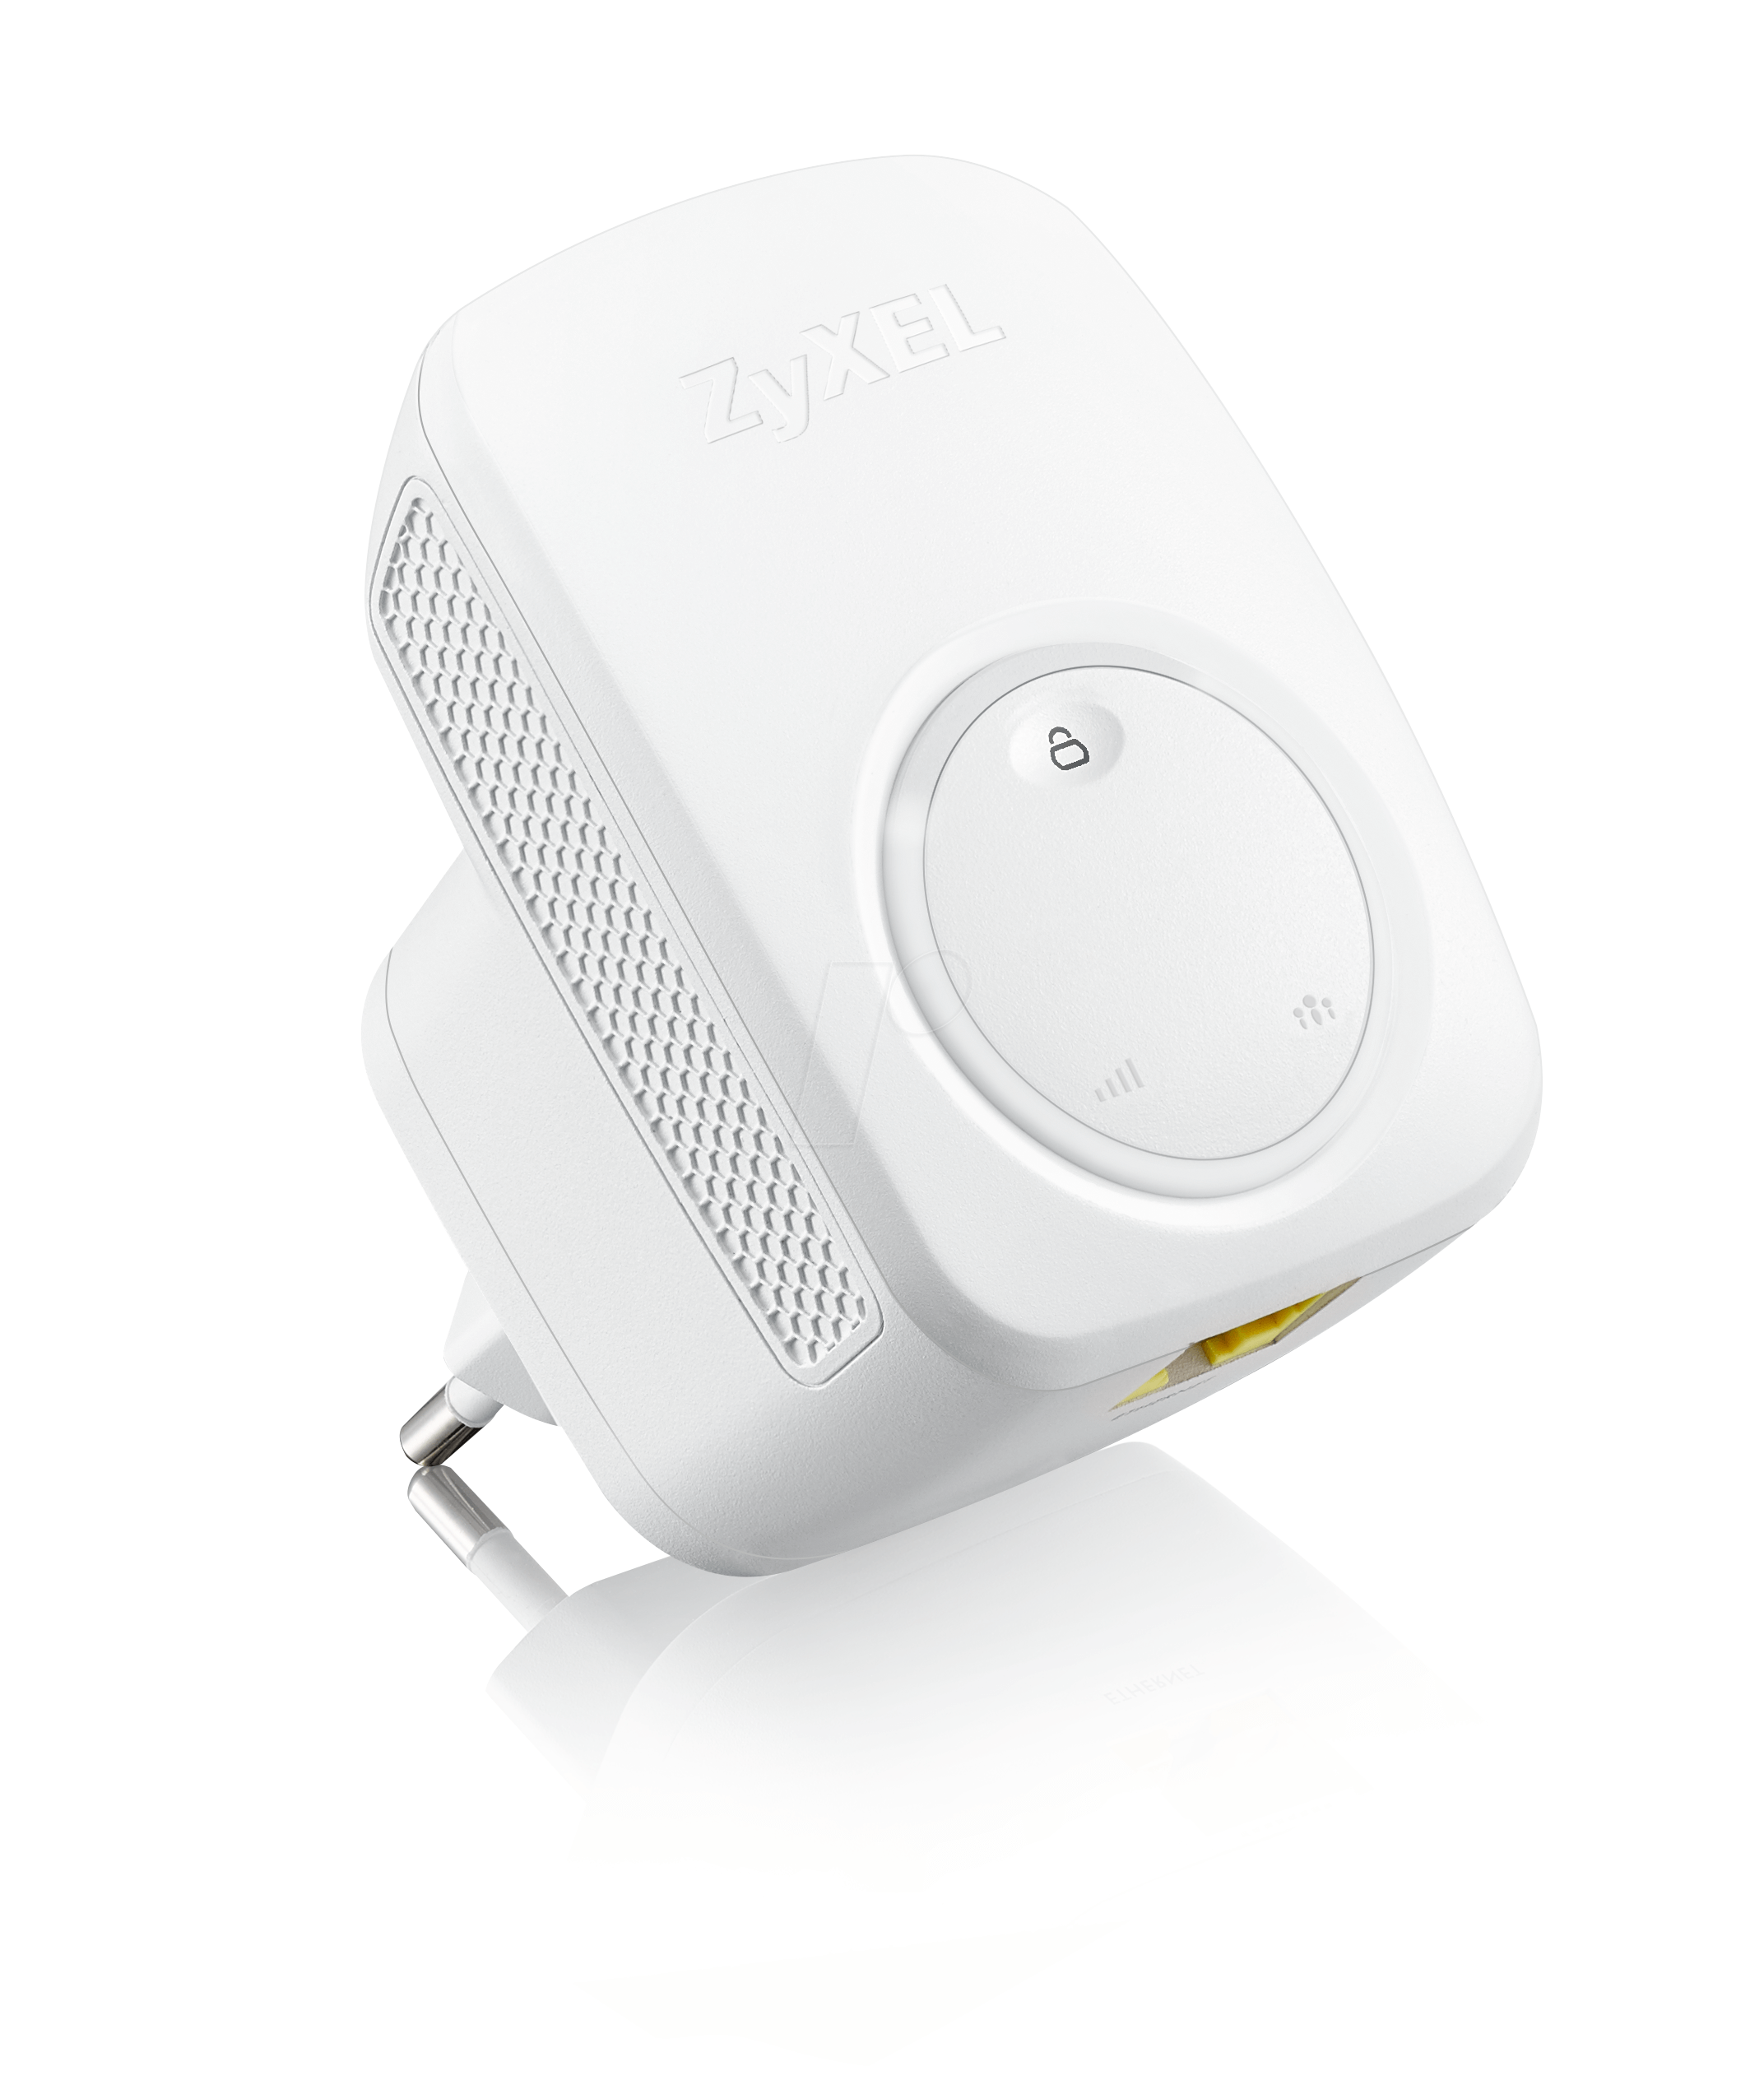 ZYXEL WRE2206 - Wireless N300 range extender